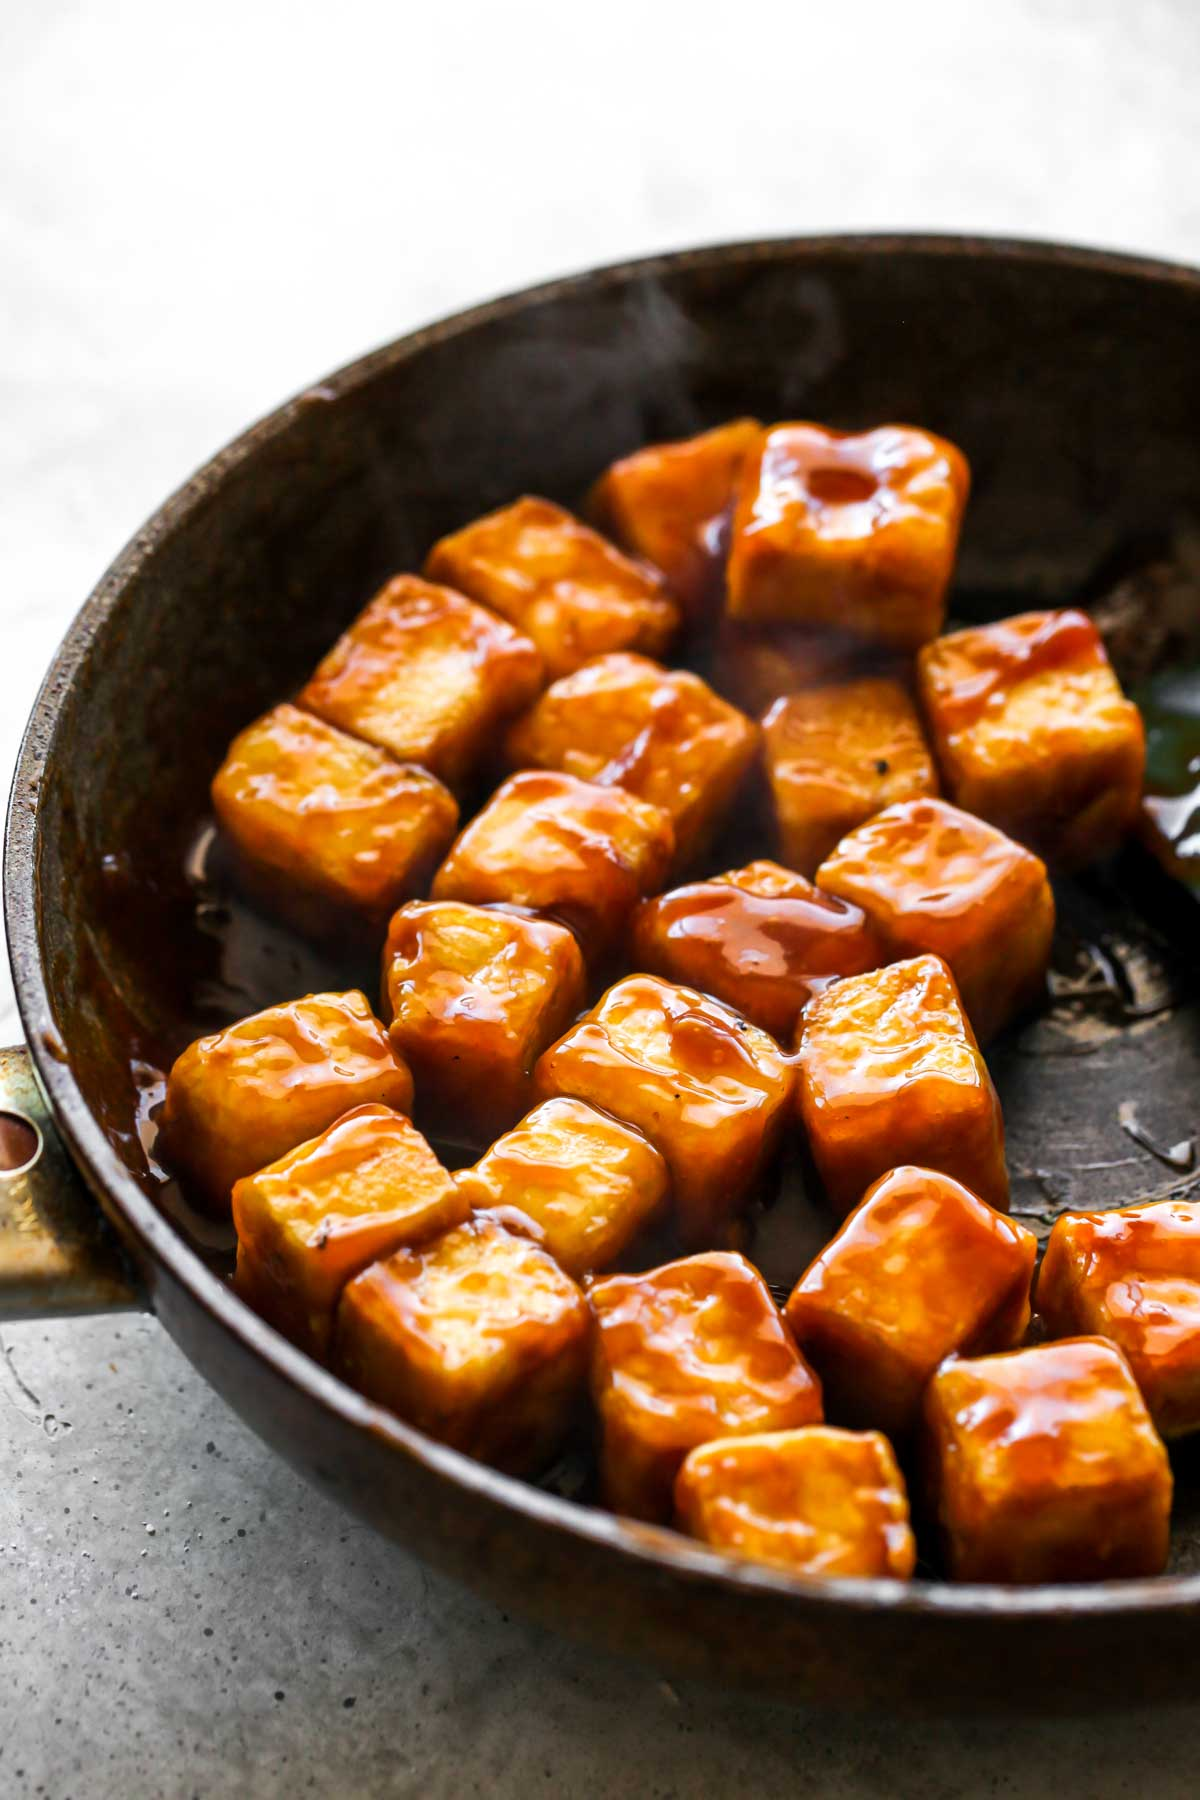 Tofu cubes being coated in orange sauce in a skillet